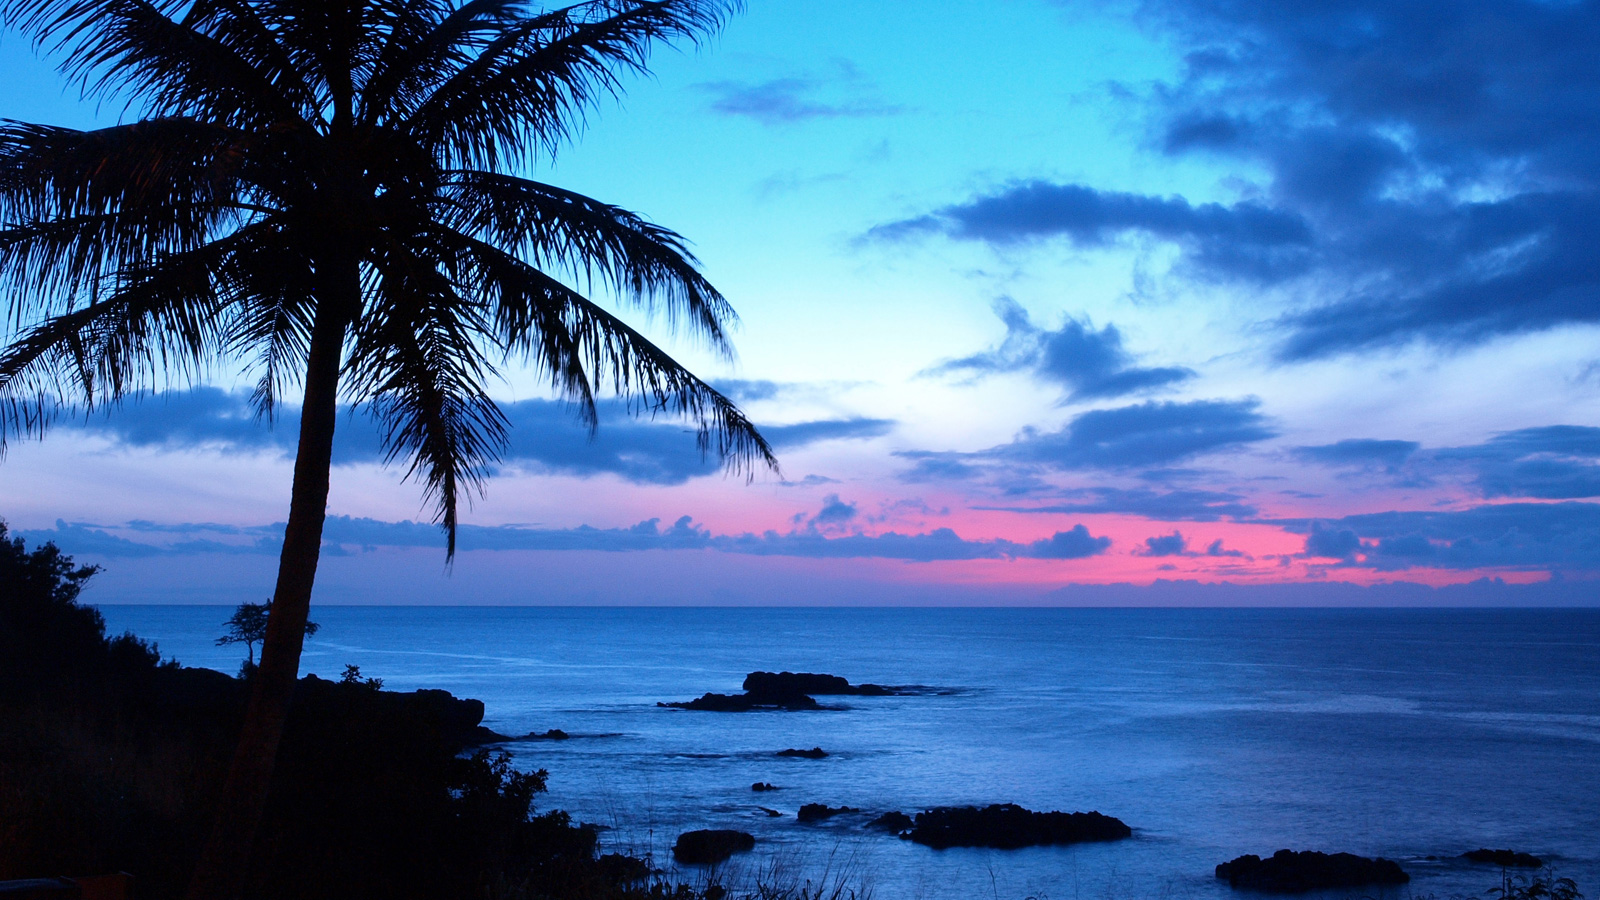 andare a vivere alle Hawaii